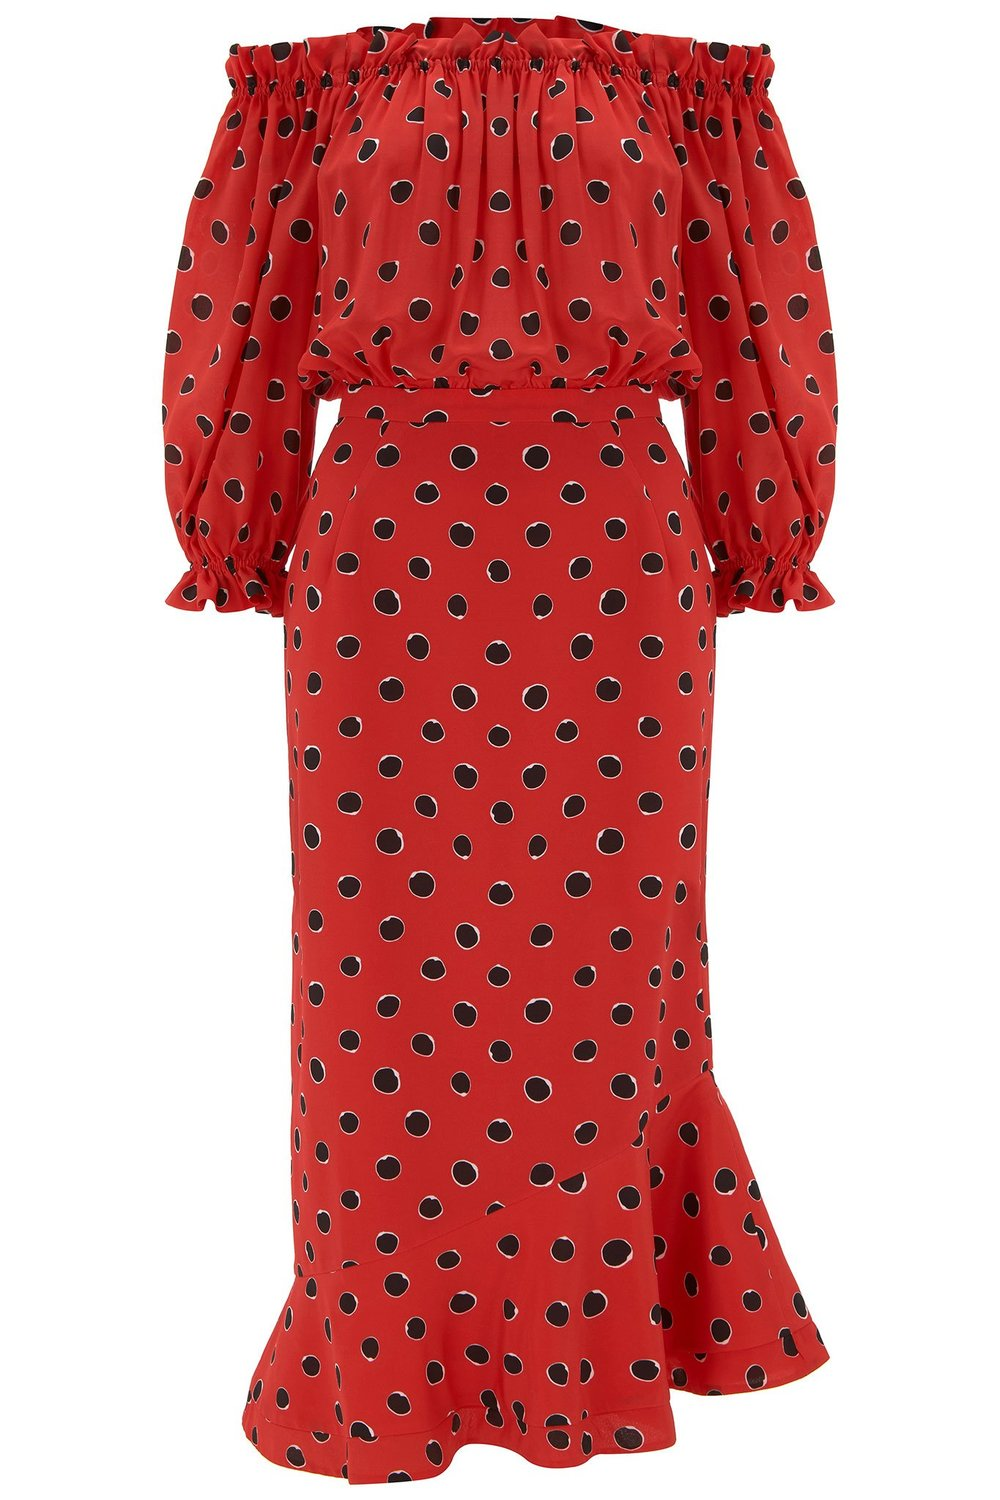 Saloni - Grace Dress Carmine Dots